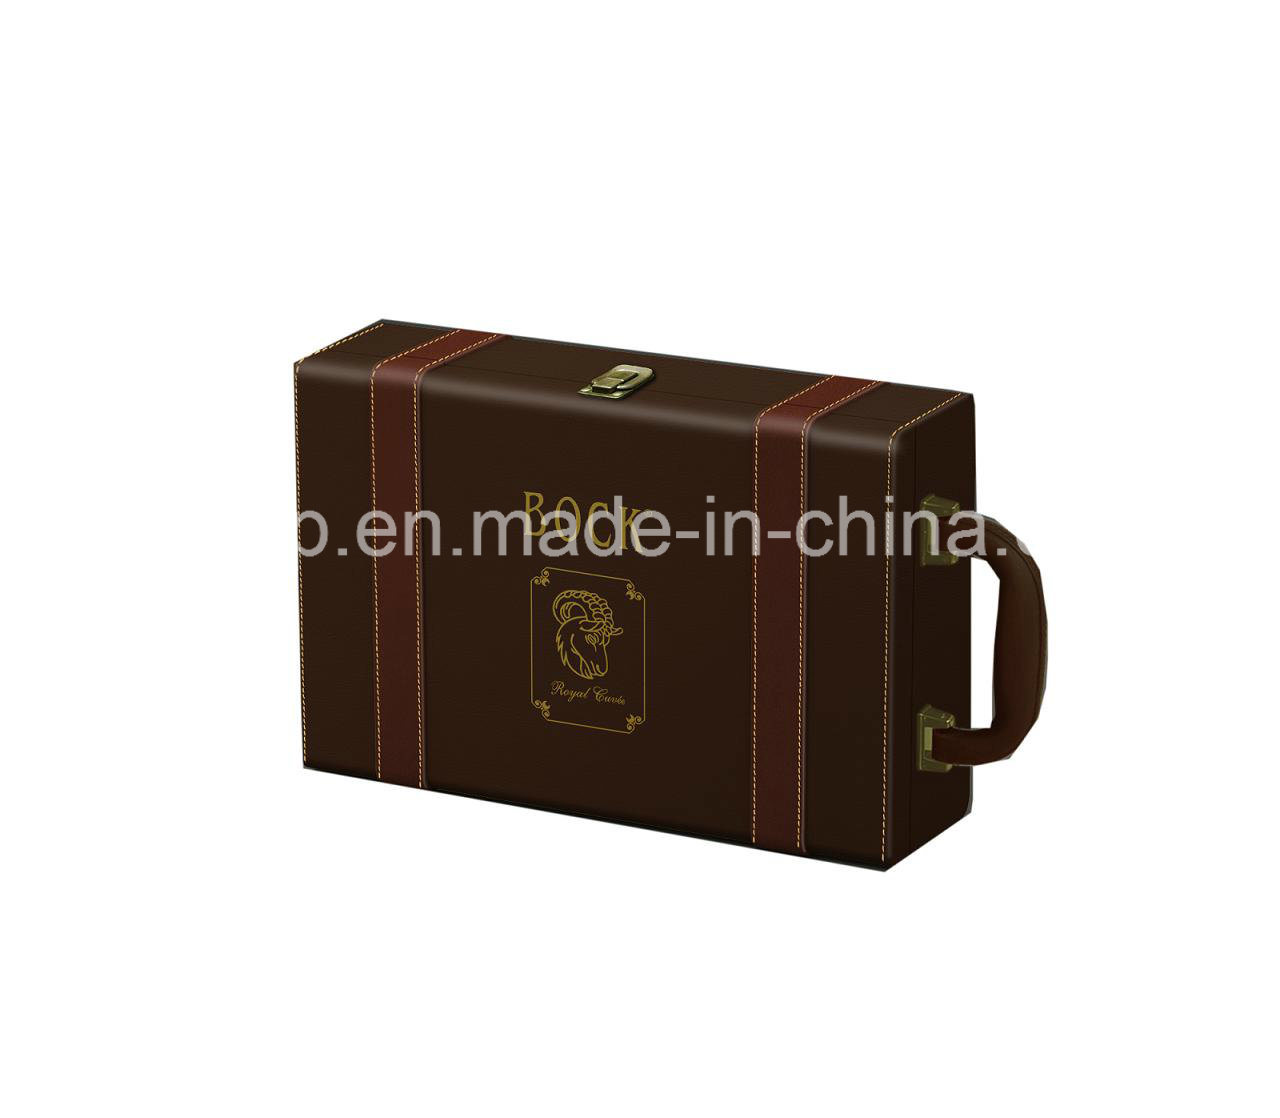 Leather Wine Carrier >> China Pu Leather Popular Wine Carrier Faux Leather Wine Holder